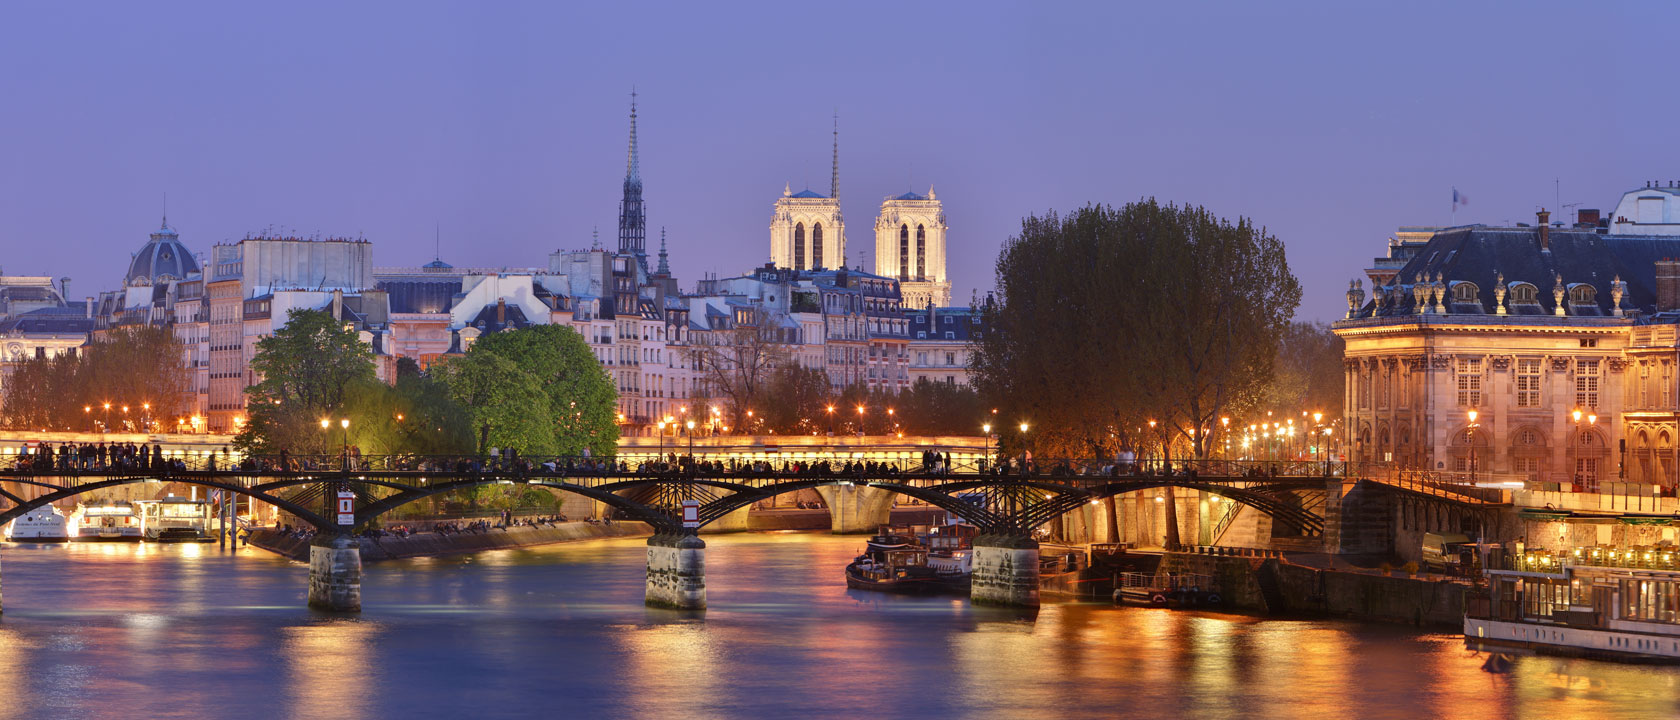 Pont-des-Arts-Paris-France